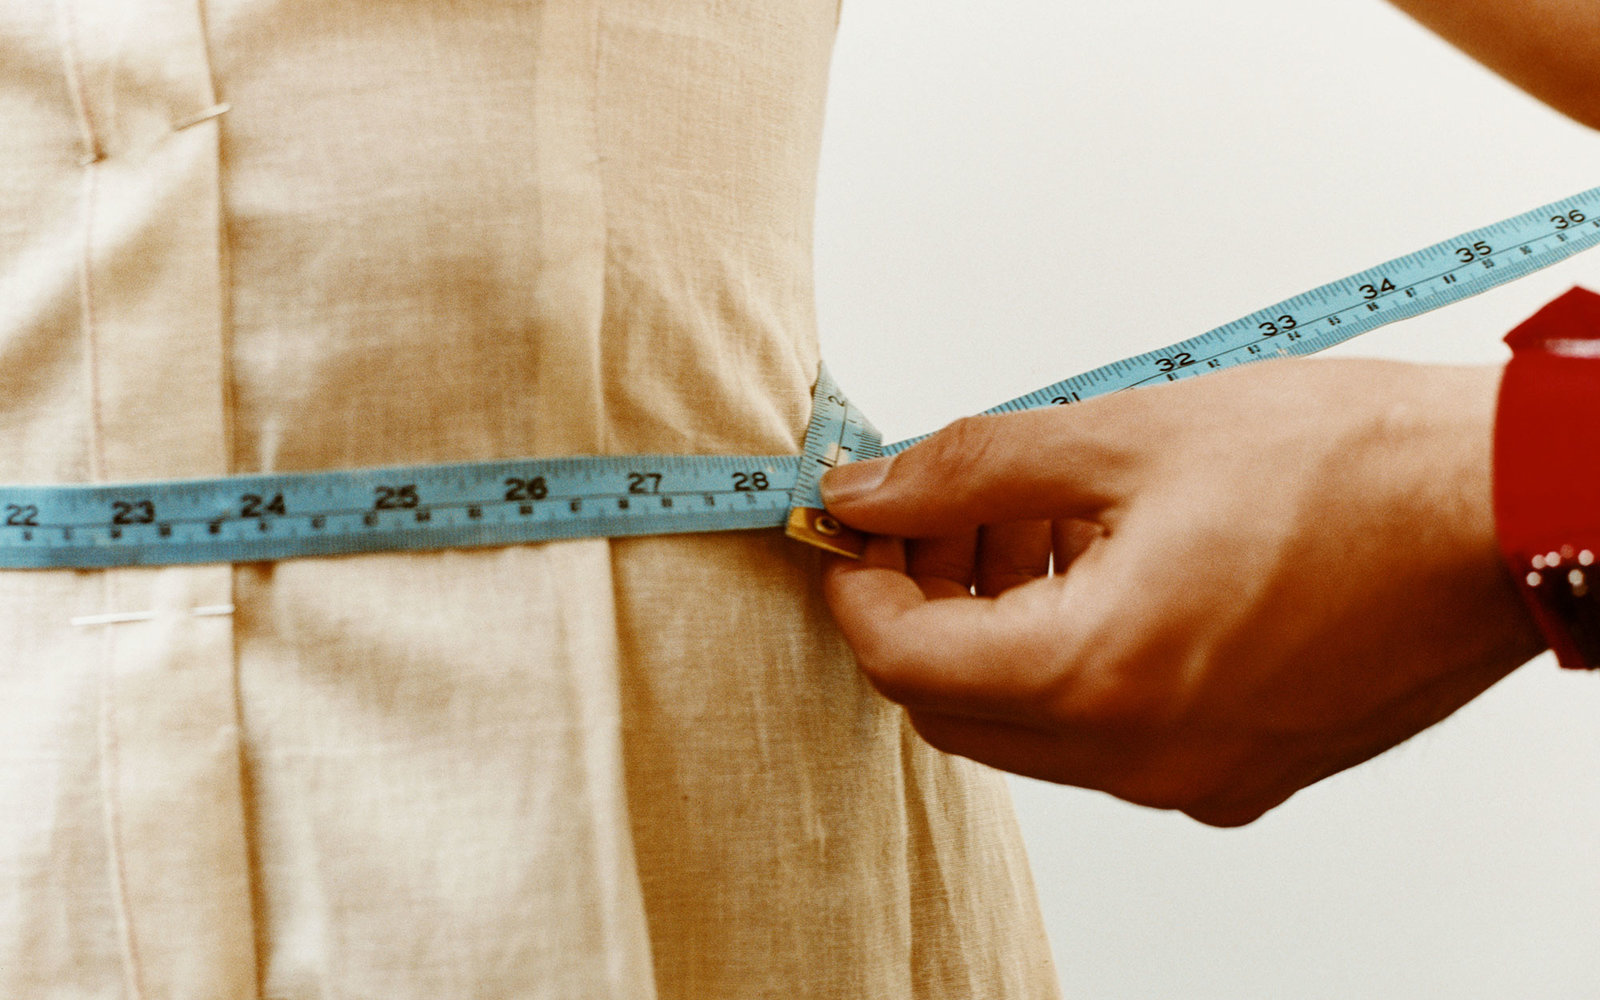 Tailor measuring woman's waistline, close-up